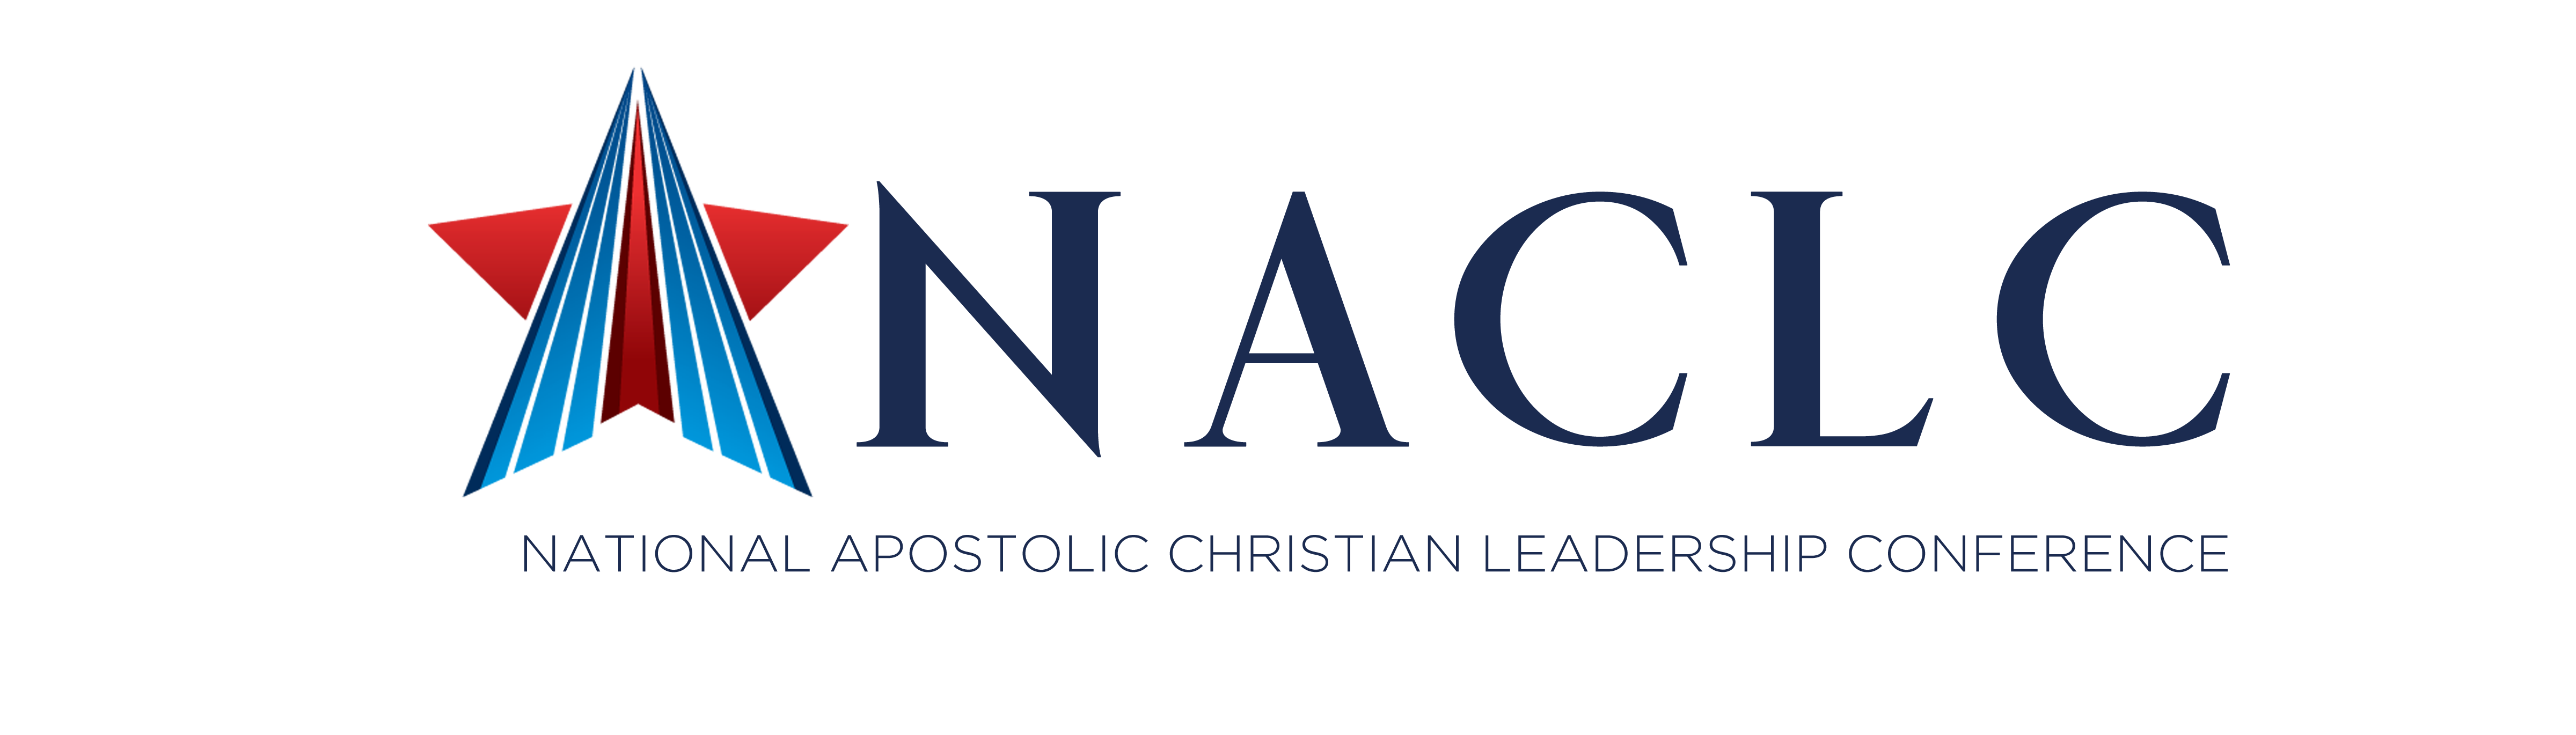 NACLC Organization Monthly Membership ($7-10M)